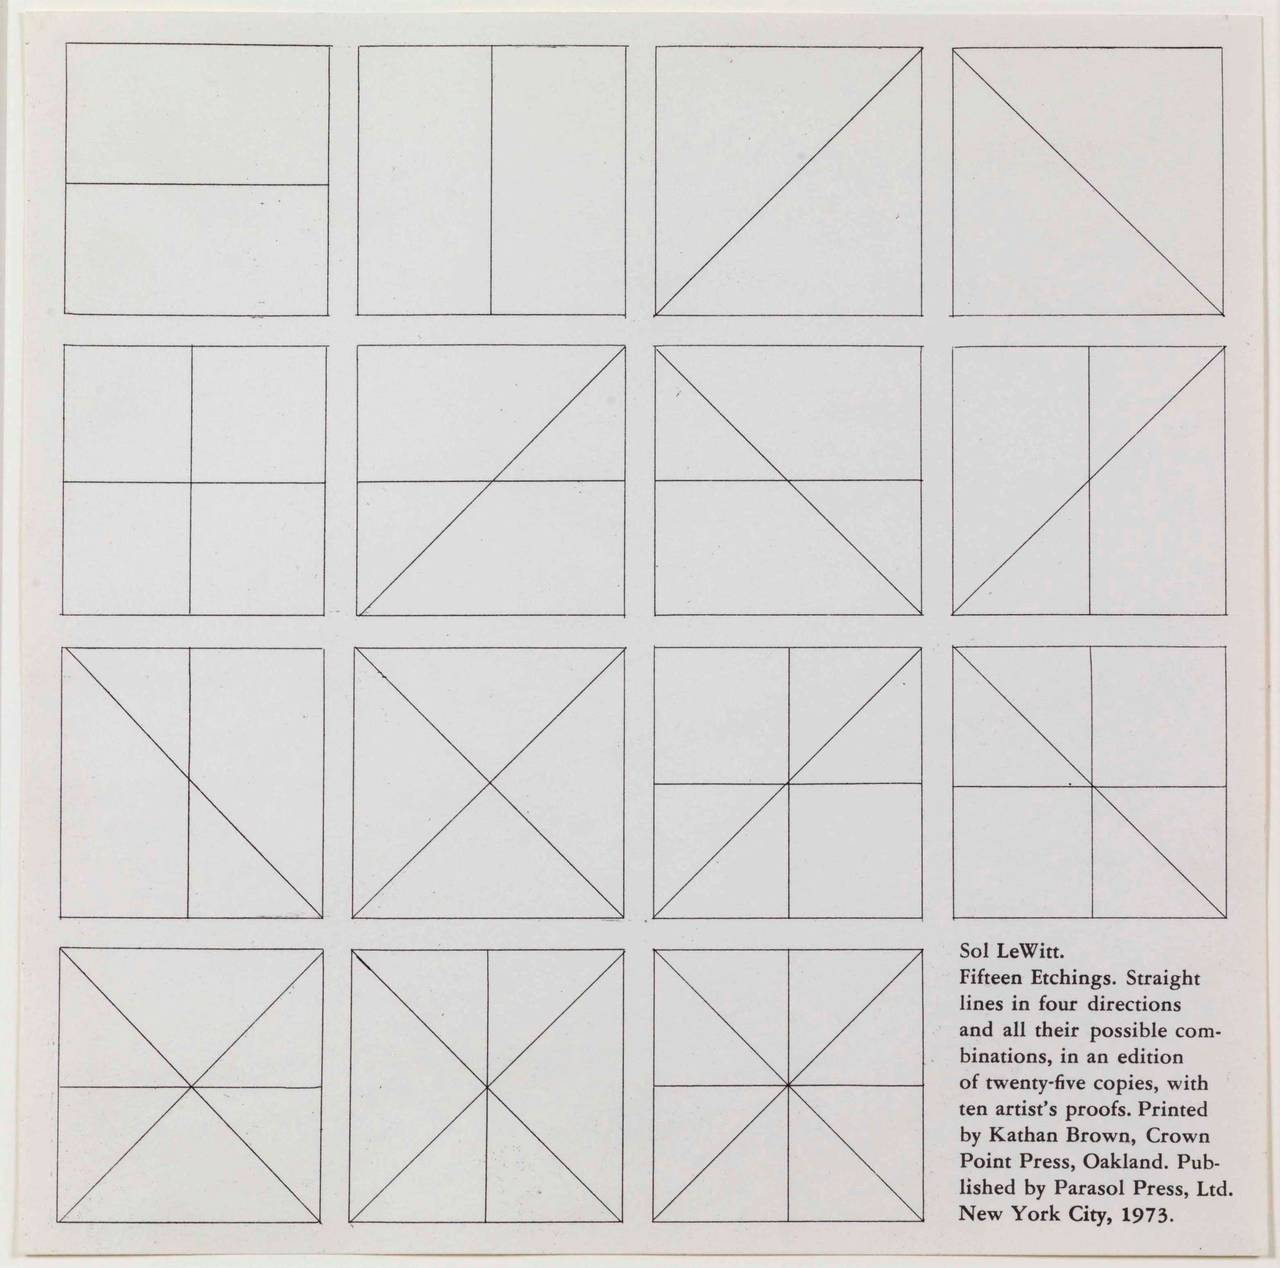 Straight Lines in Four Directions & All Their Possible Combinations